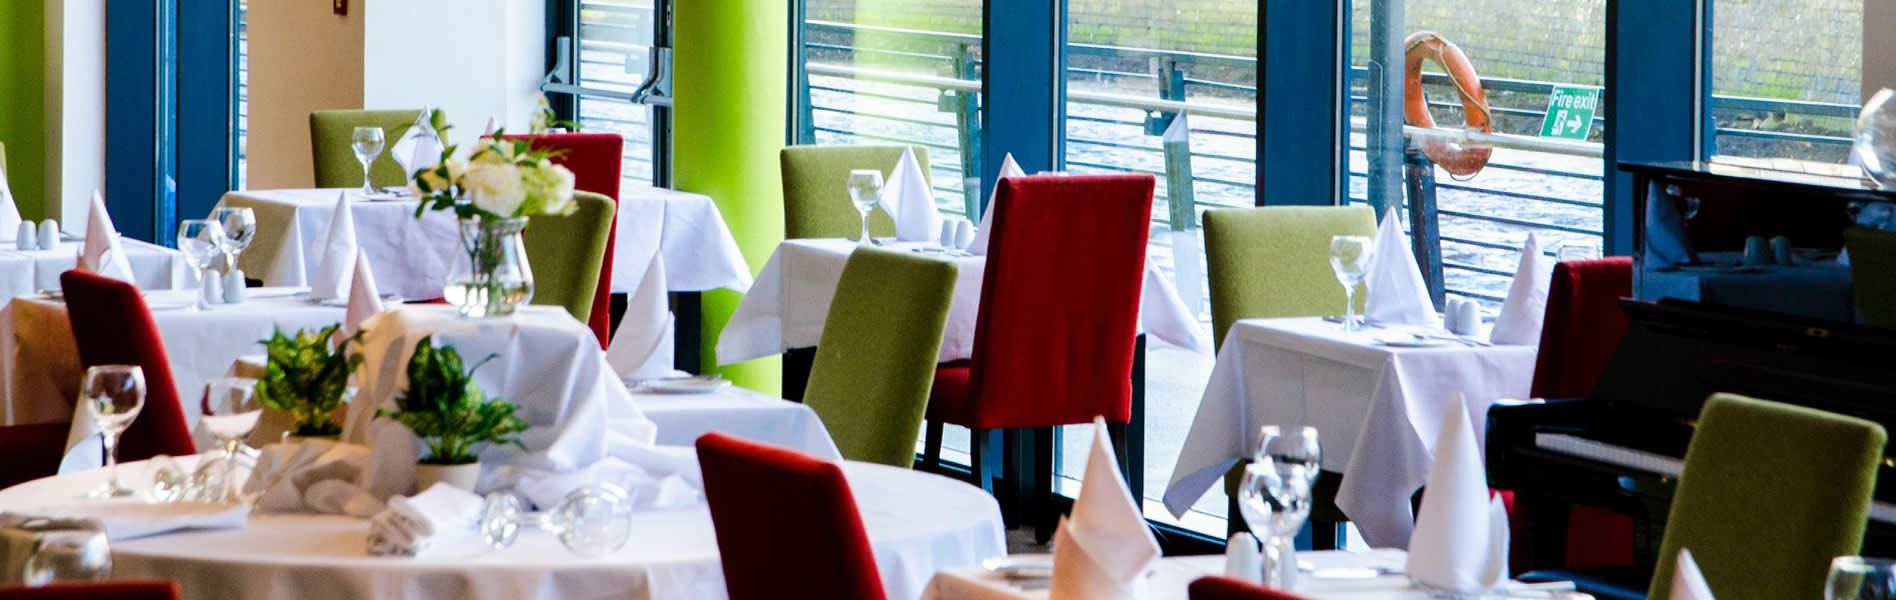 Glasshouse Restaurant Sligo